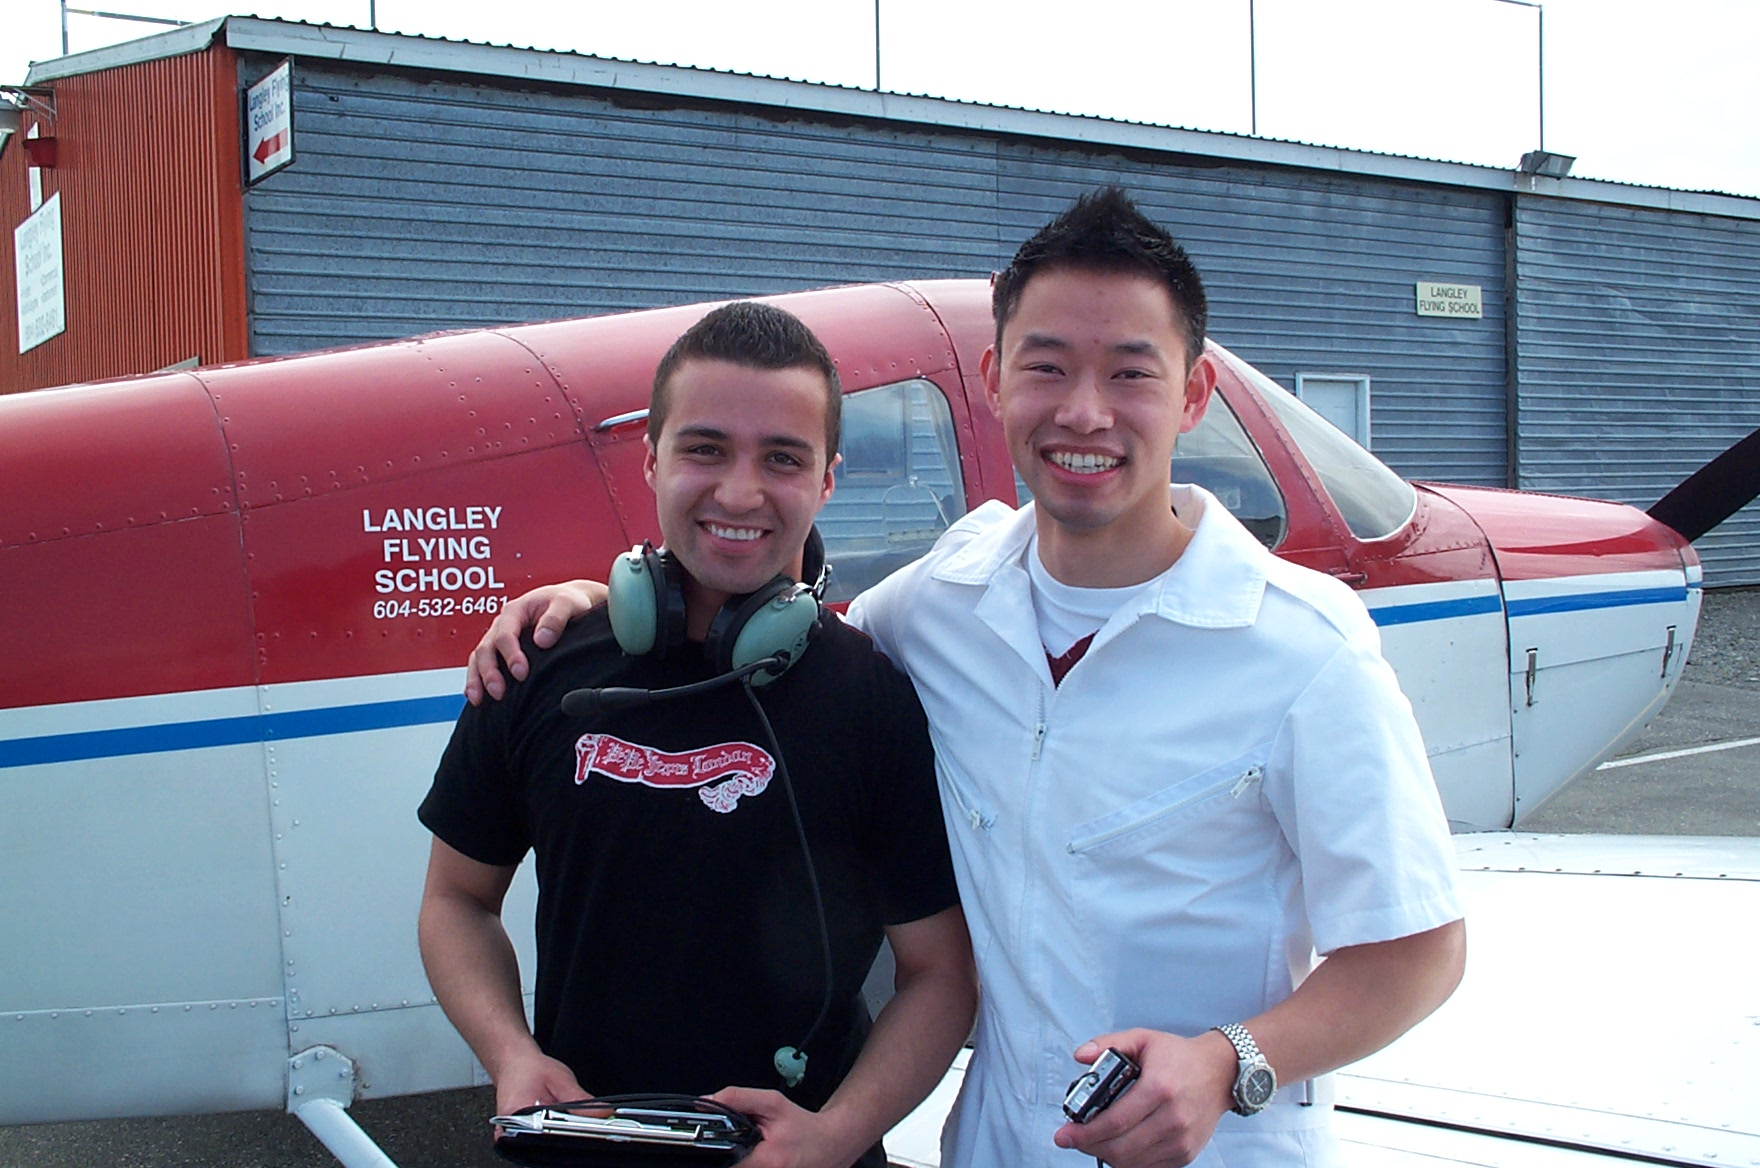 Andres Angulo with his Flight Instructor Nam Vu after completing his First Solo Flight on April 14, 2010.  Langley Flying School.